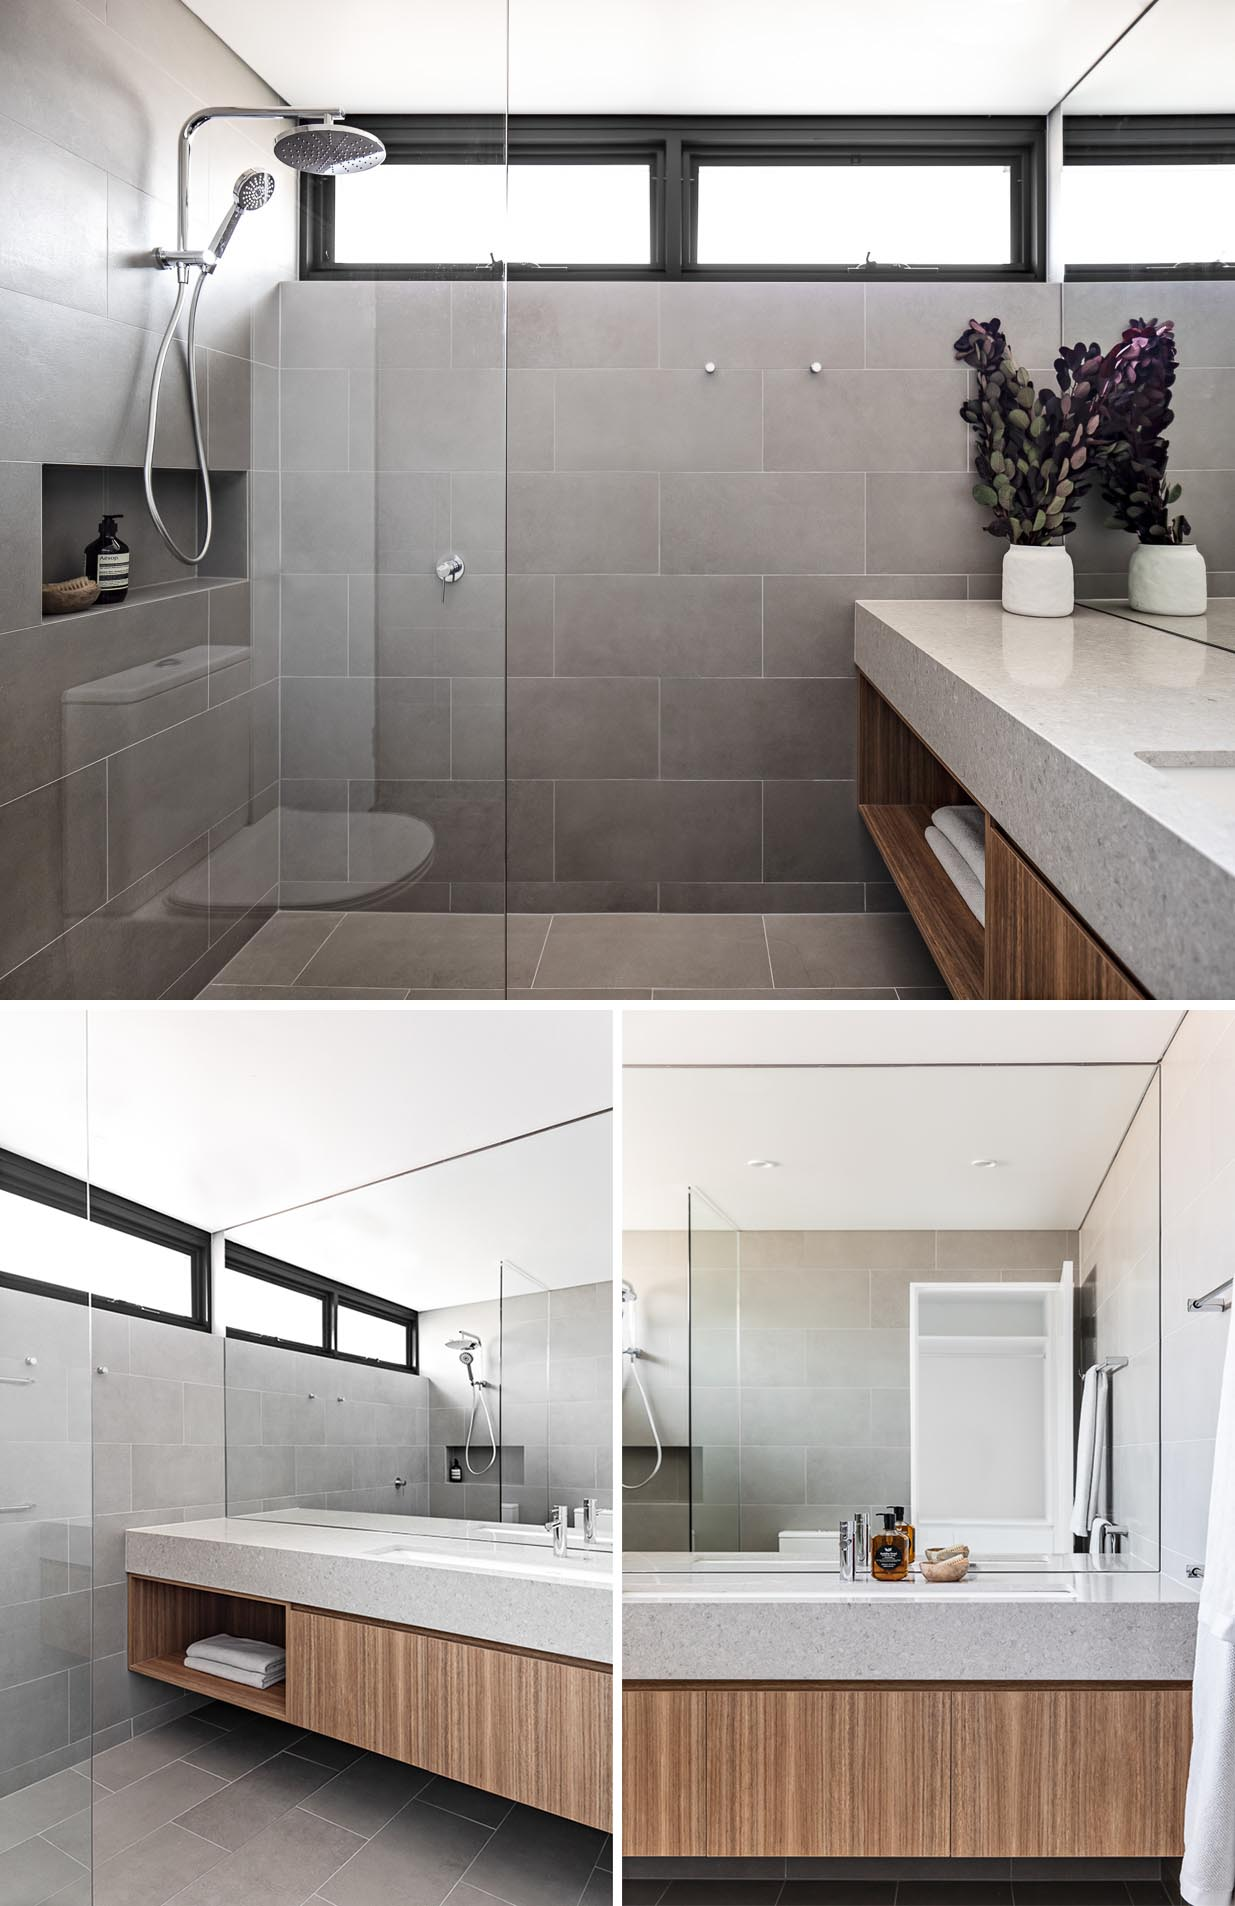 A modern bathroom with large gray tiles that cover the walls and floor, a floating wood vanity, and a shower niche.